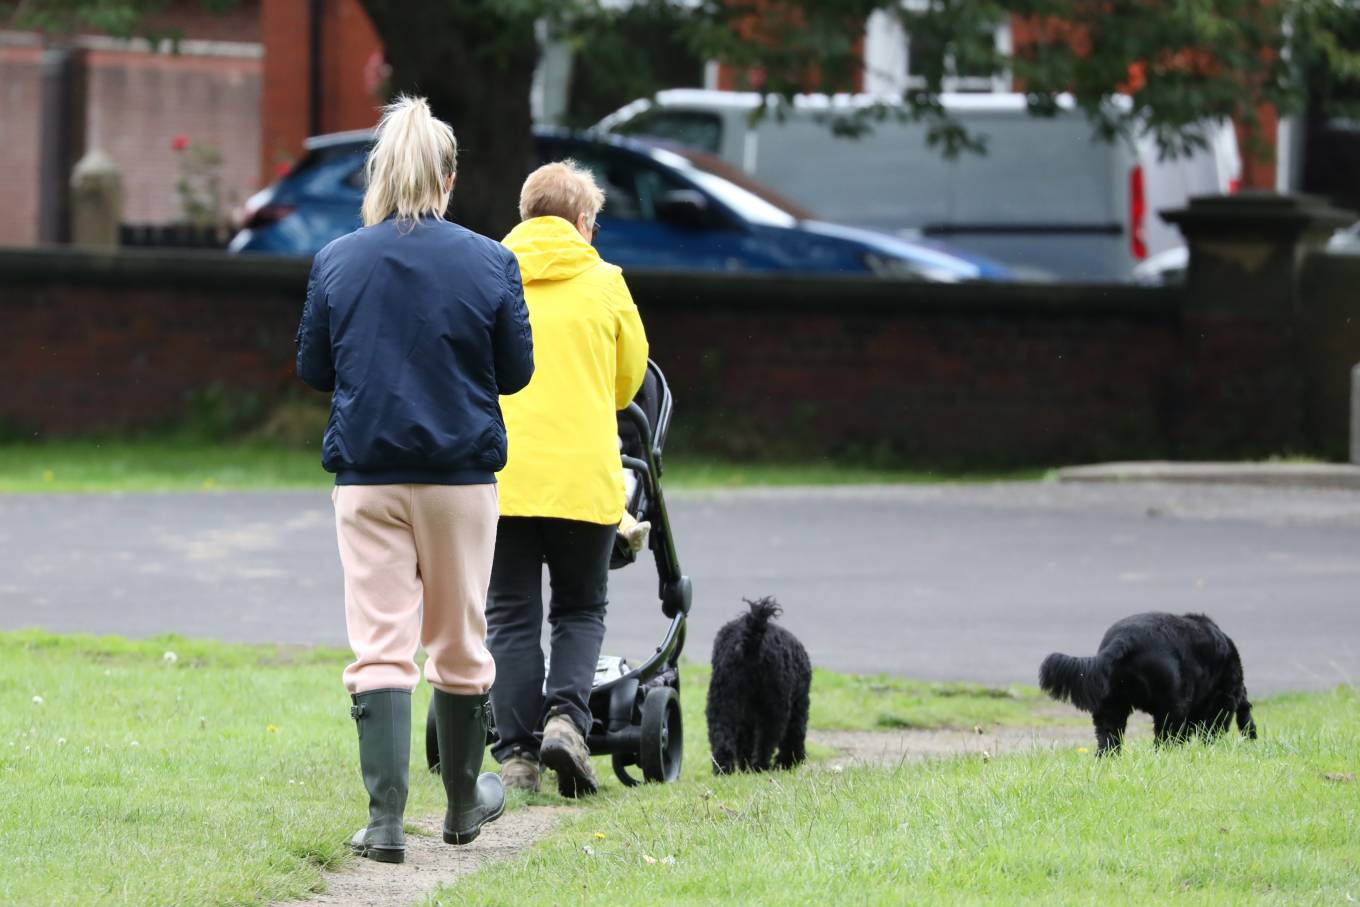 Gemma Atkinson 2020 : Gemma Atkinson – Out for a morning dog walk in Manchester-10